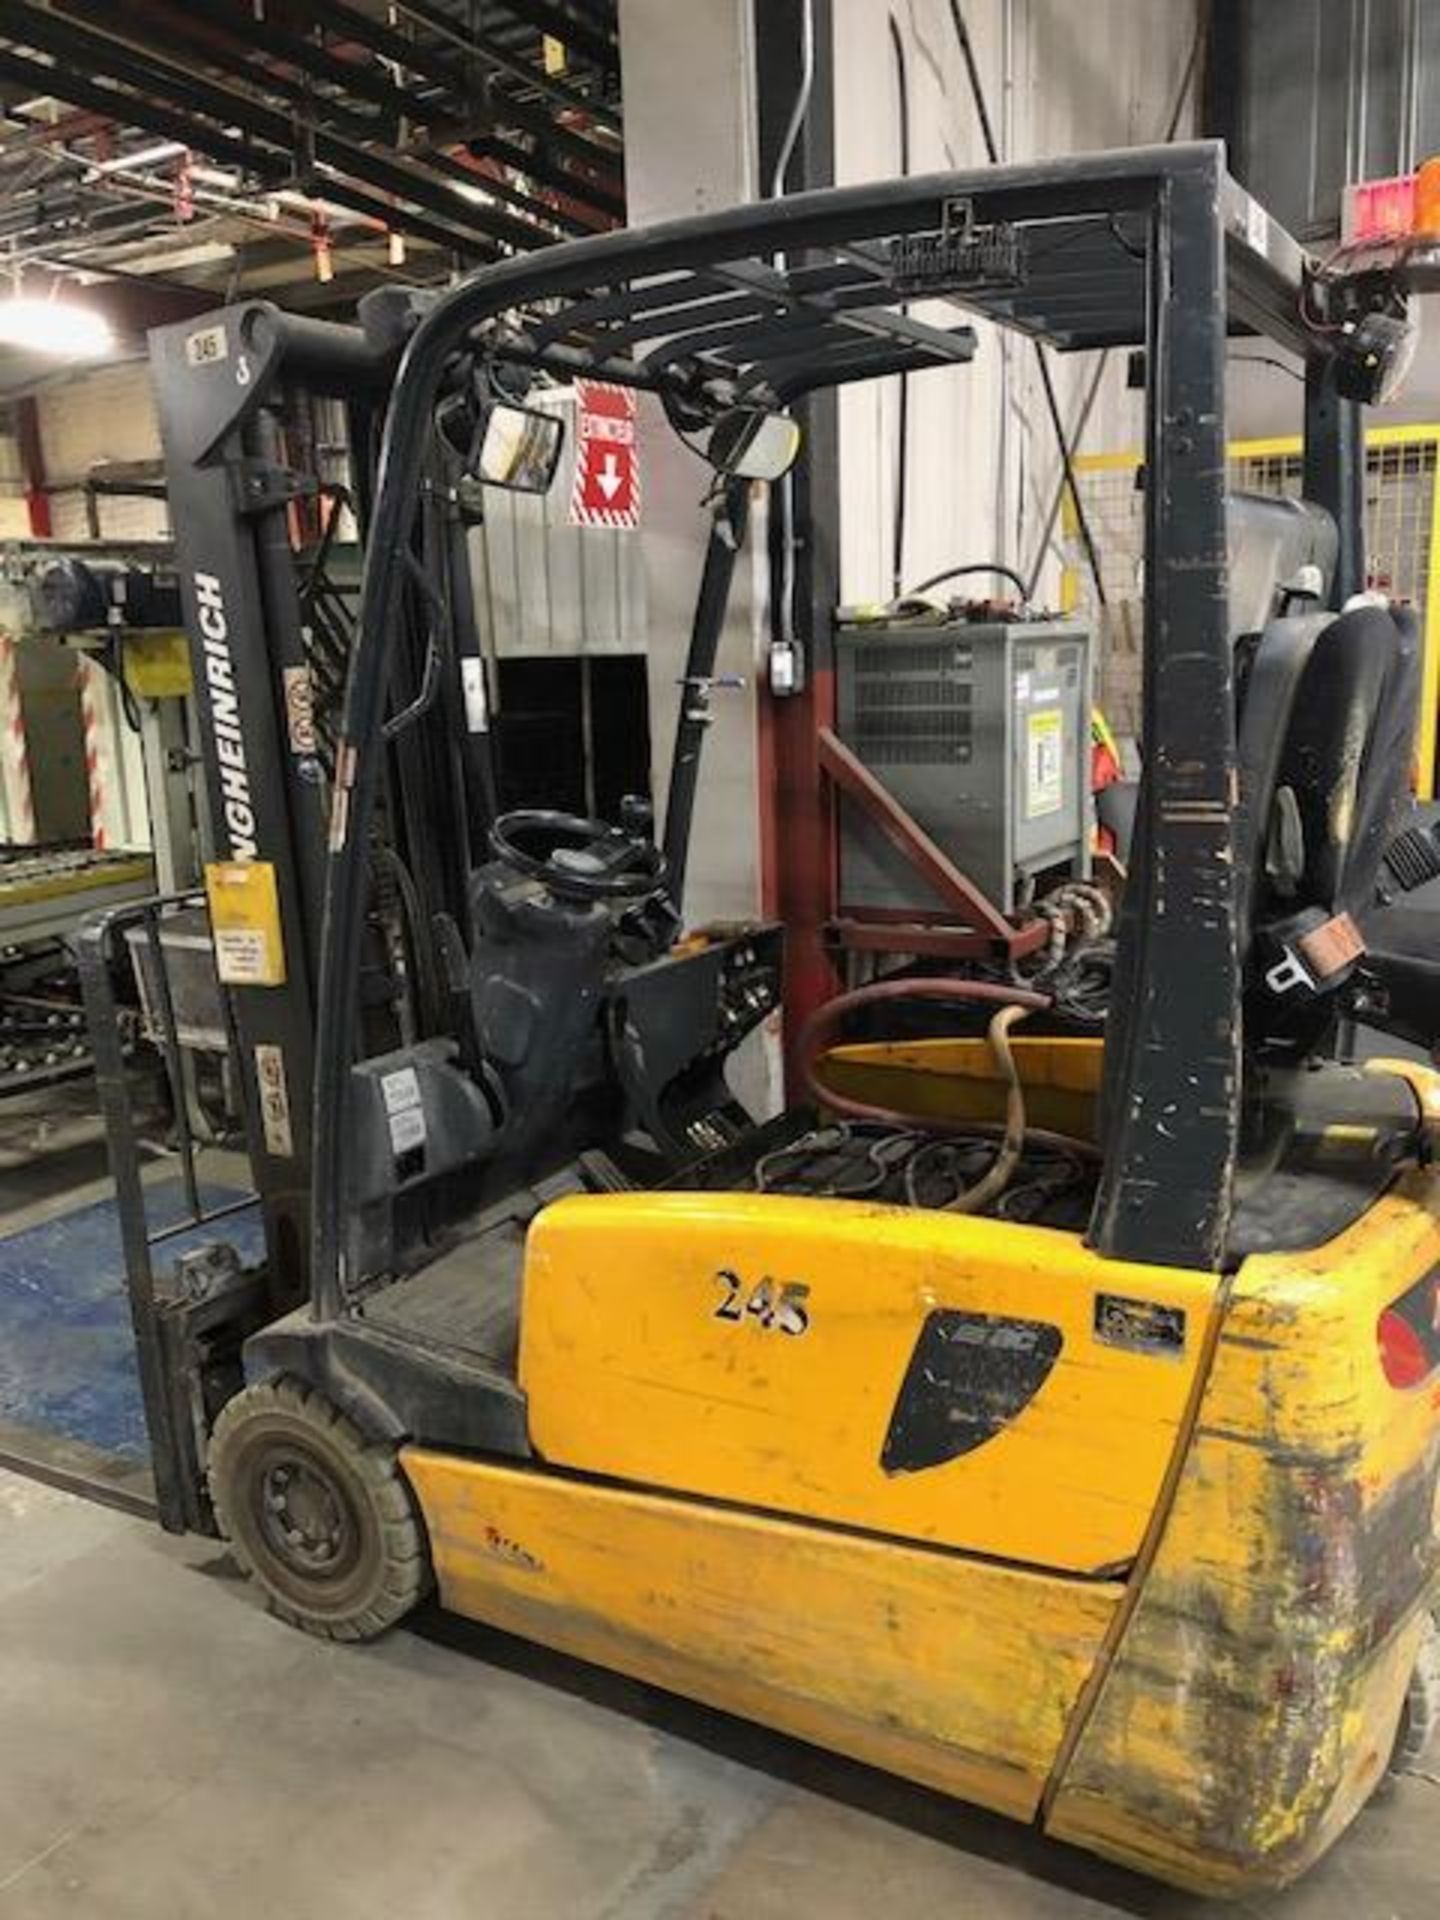 Lot 57 - 2005, electric forklift Jungheinrich, 3,730lbs, 3 stage mast, side shift, 3 wheels, Model: EFG220,